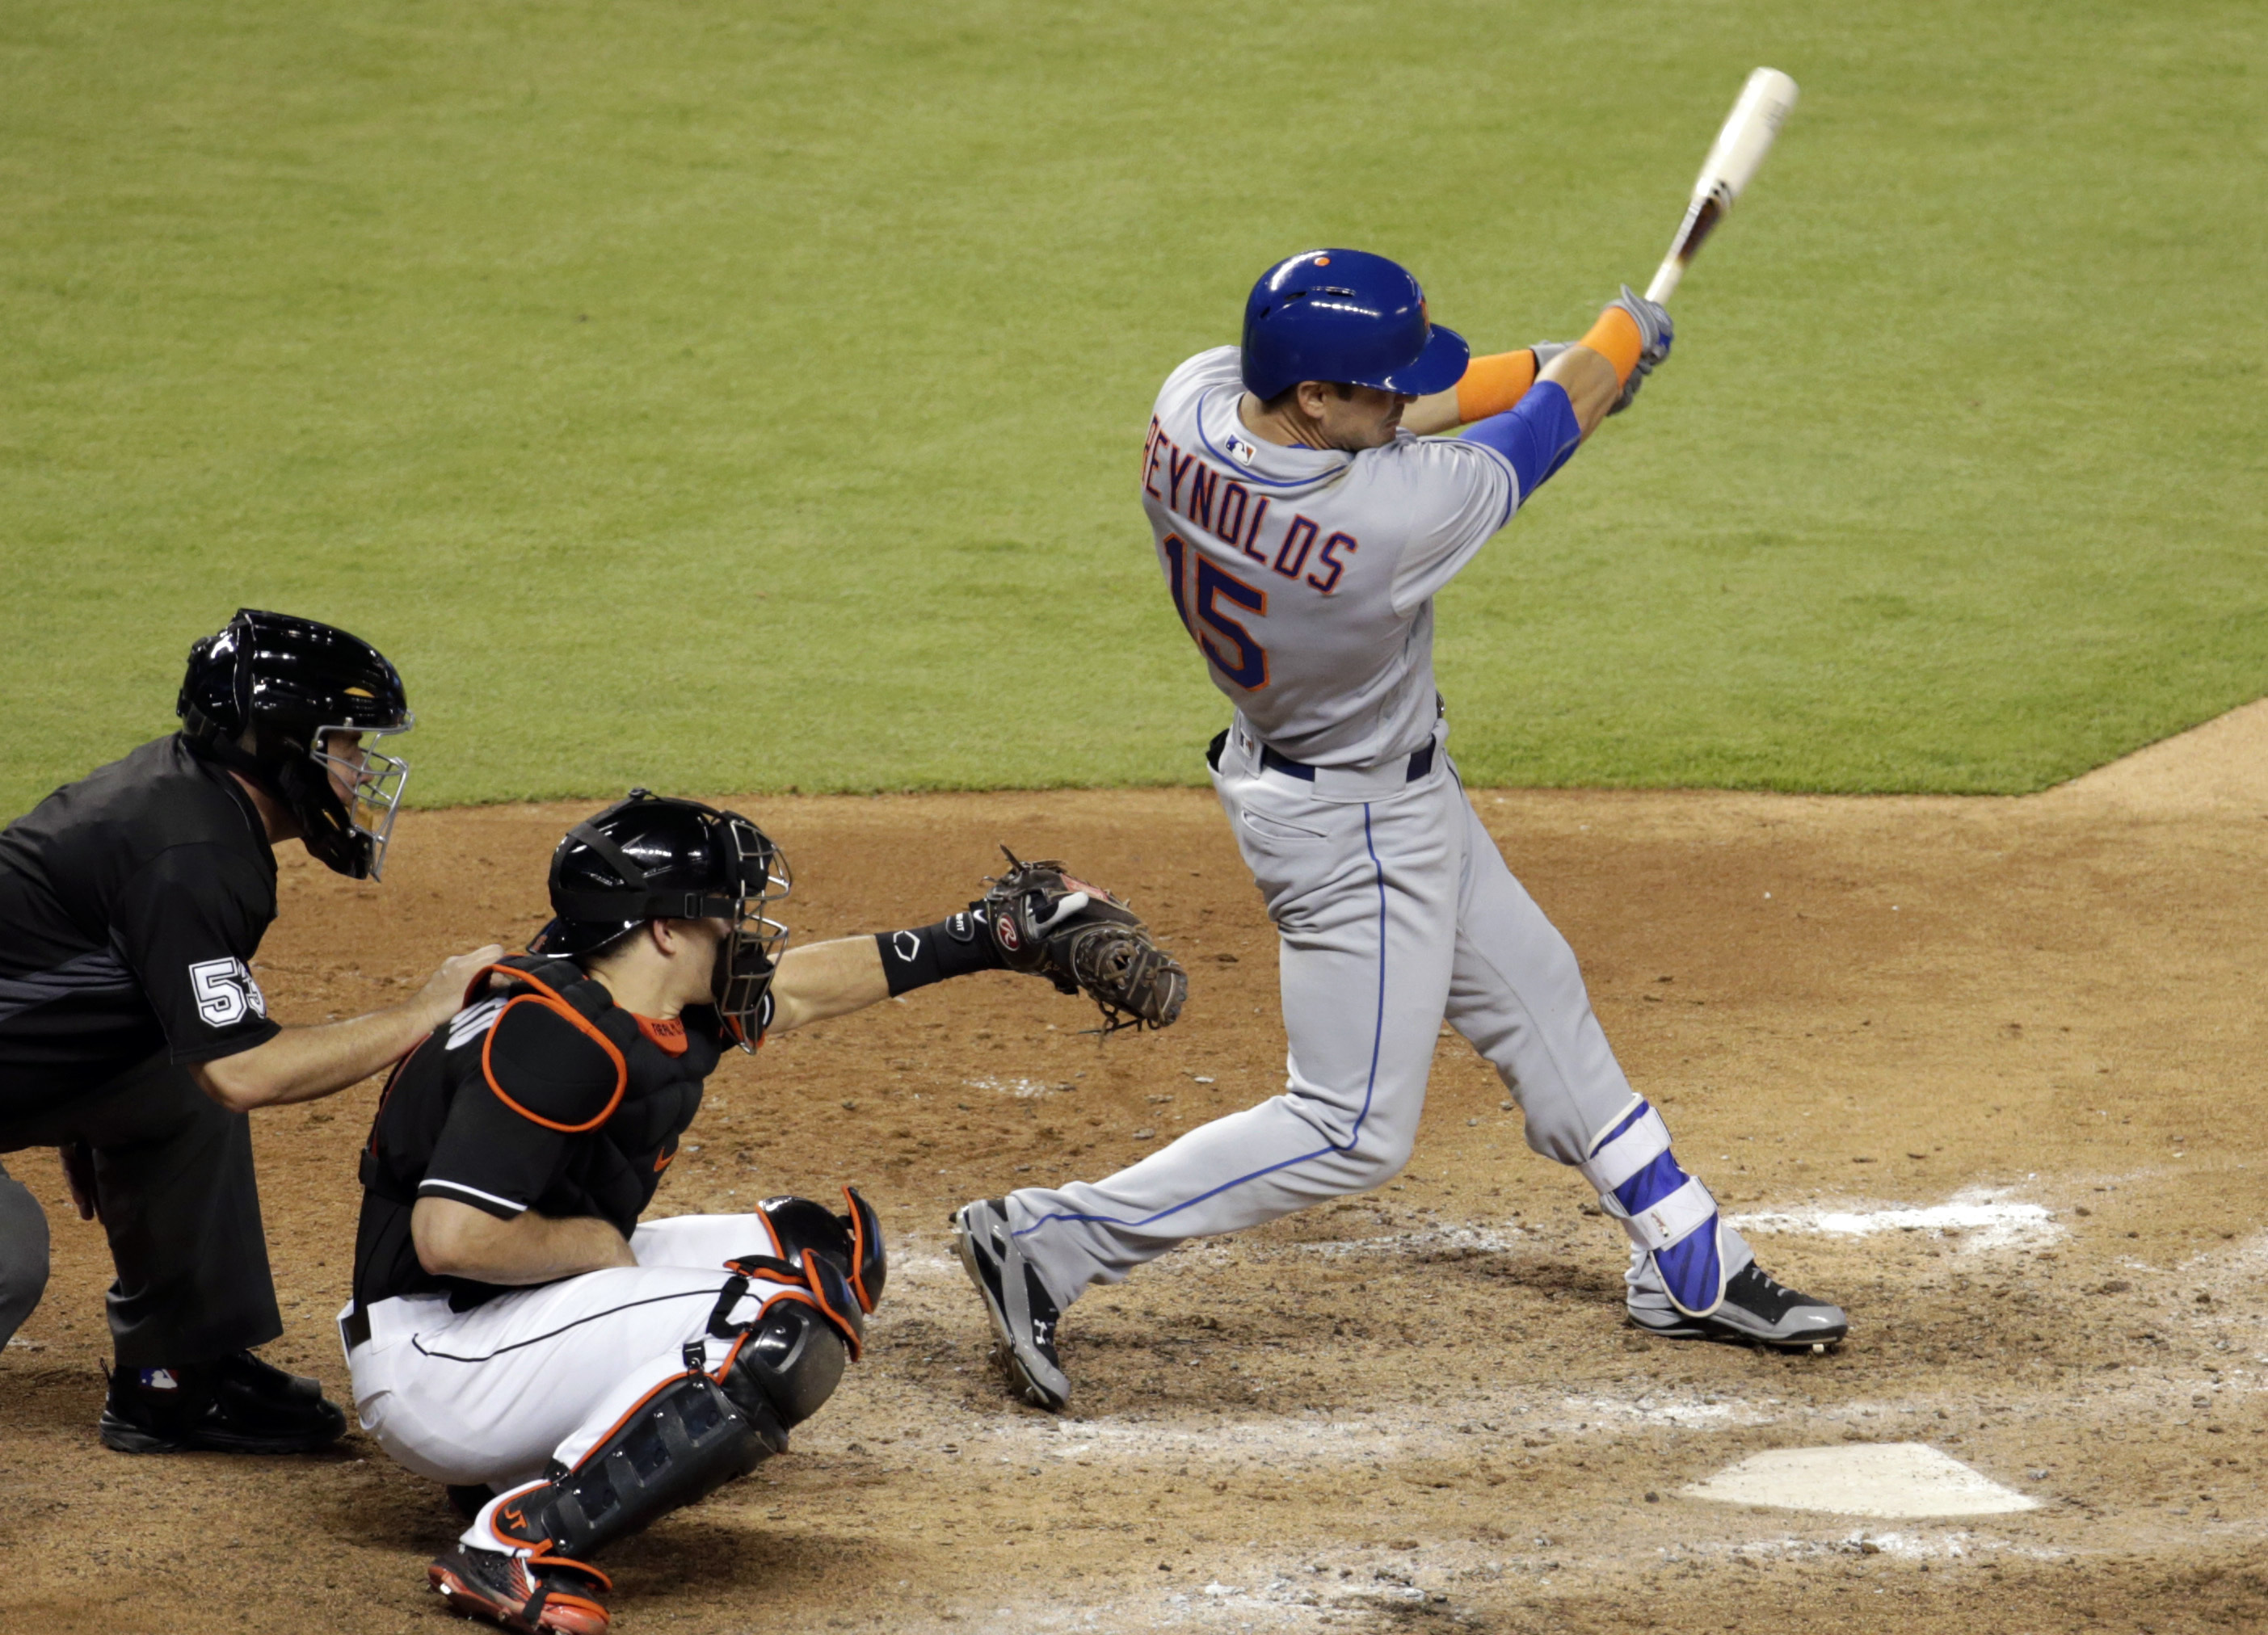 New York Mets' Matt Reynolds (15) follows through on an RBI-single to score Michael Conforto during the eighth inning of a baseball game against the Miami Marlins, Saturday, June 4, 2016, in Miami. Marlins catcher J.T. Realmuto, center, looks on. (AP Phot